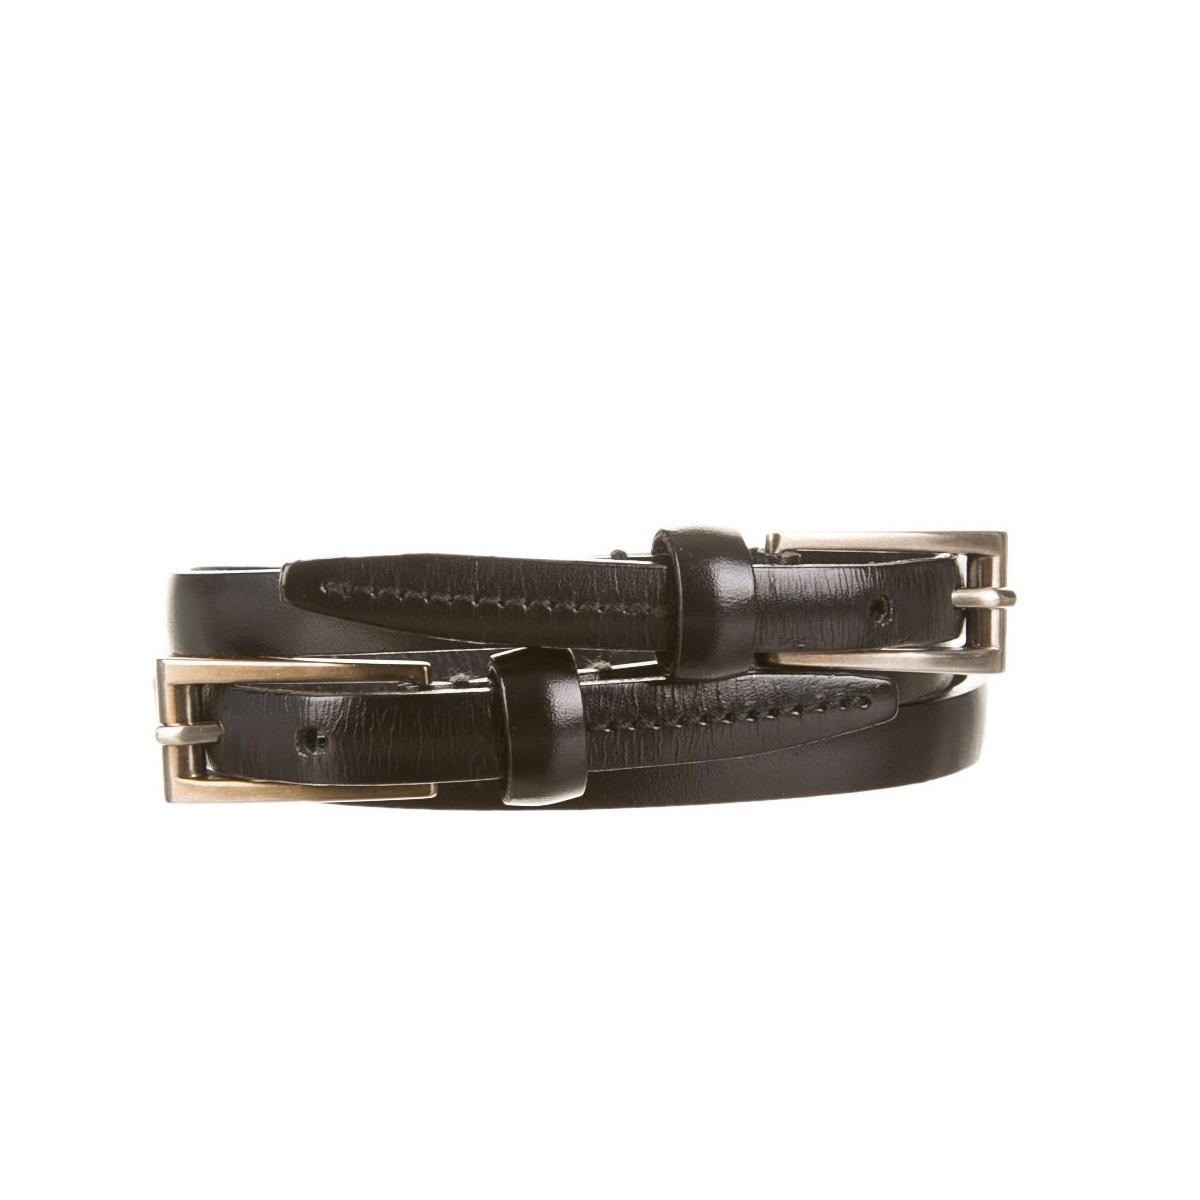 Free Shipping Get Authentic Big Discount Online Prada skinny buckled belt Wiki Cheap Price Fashionable Outlet Order Online BXX9ElT